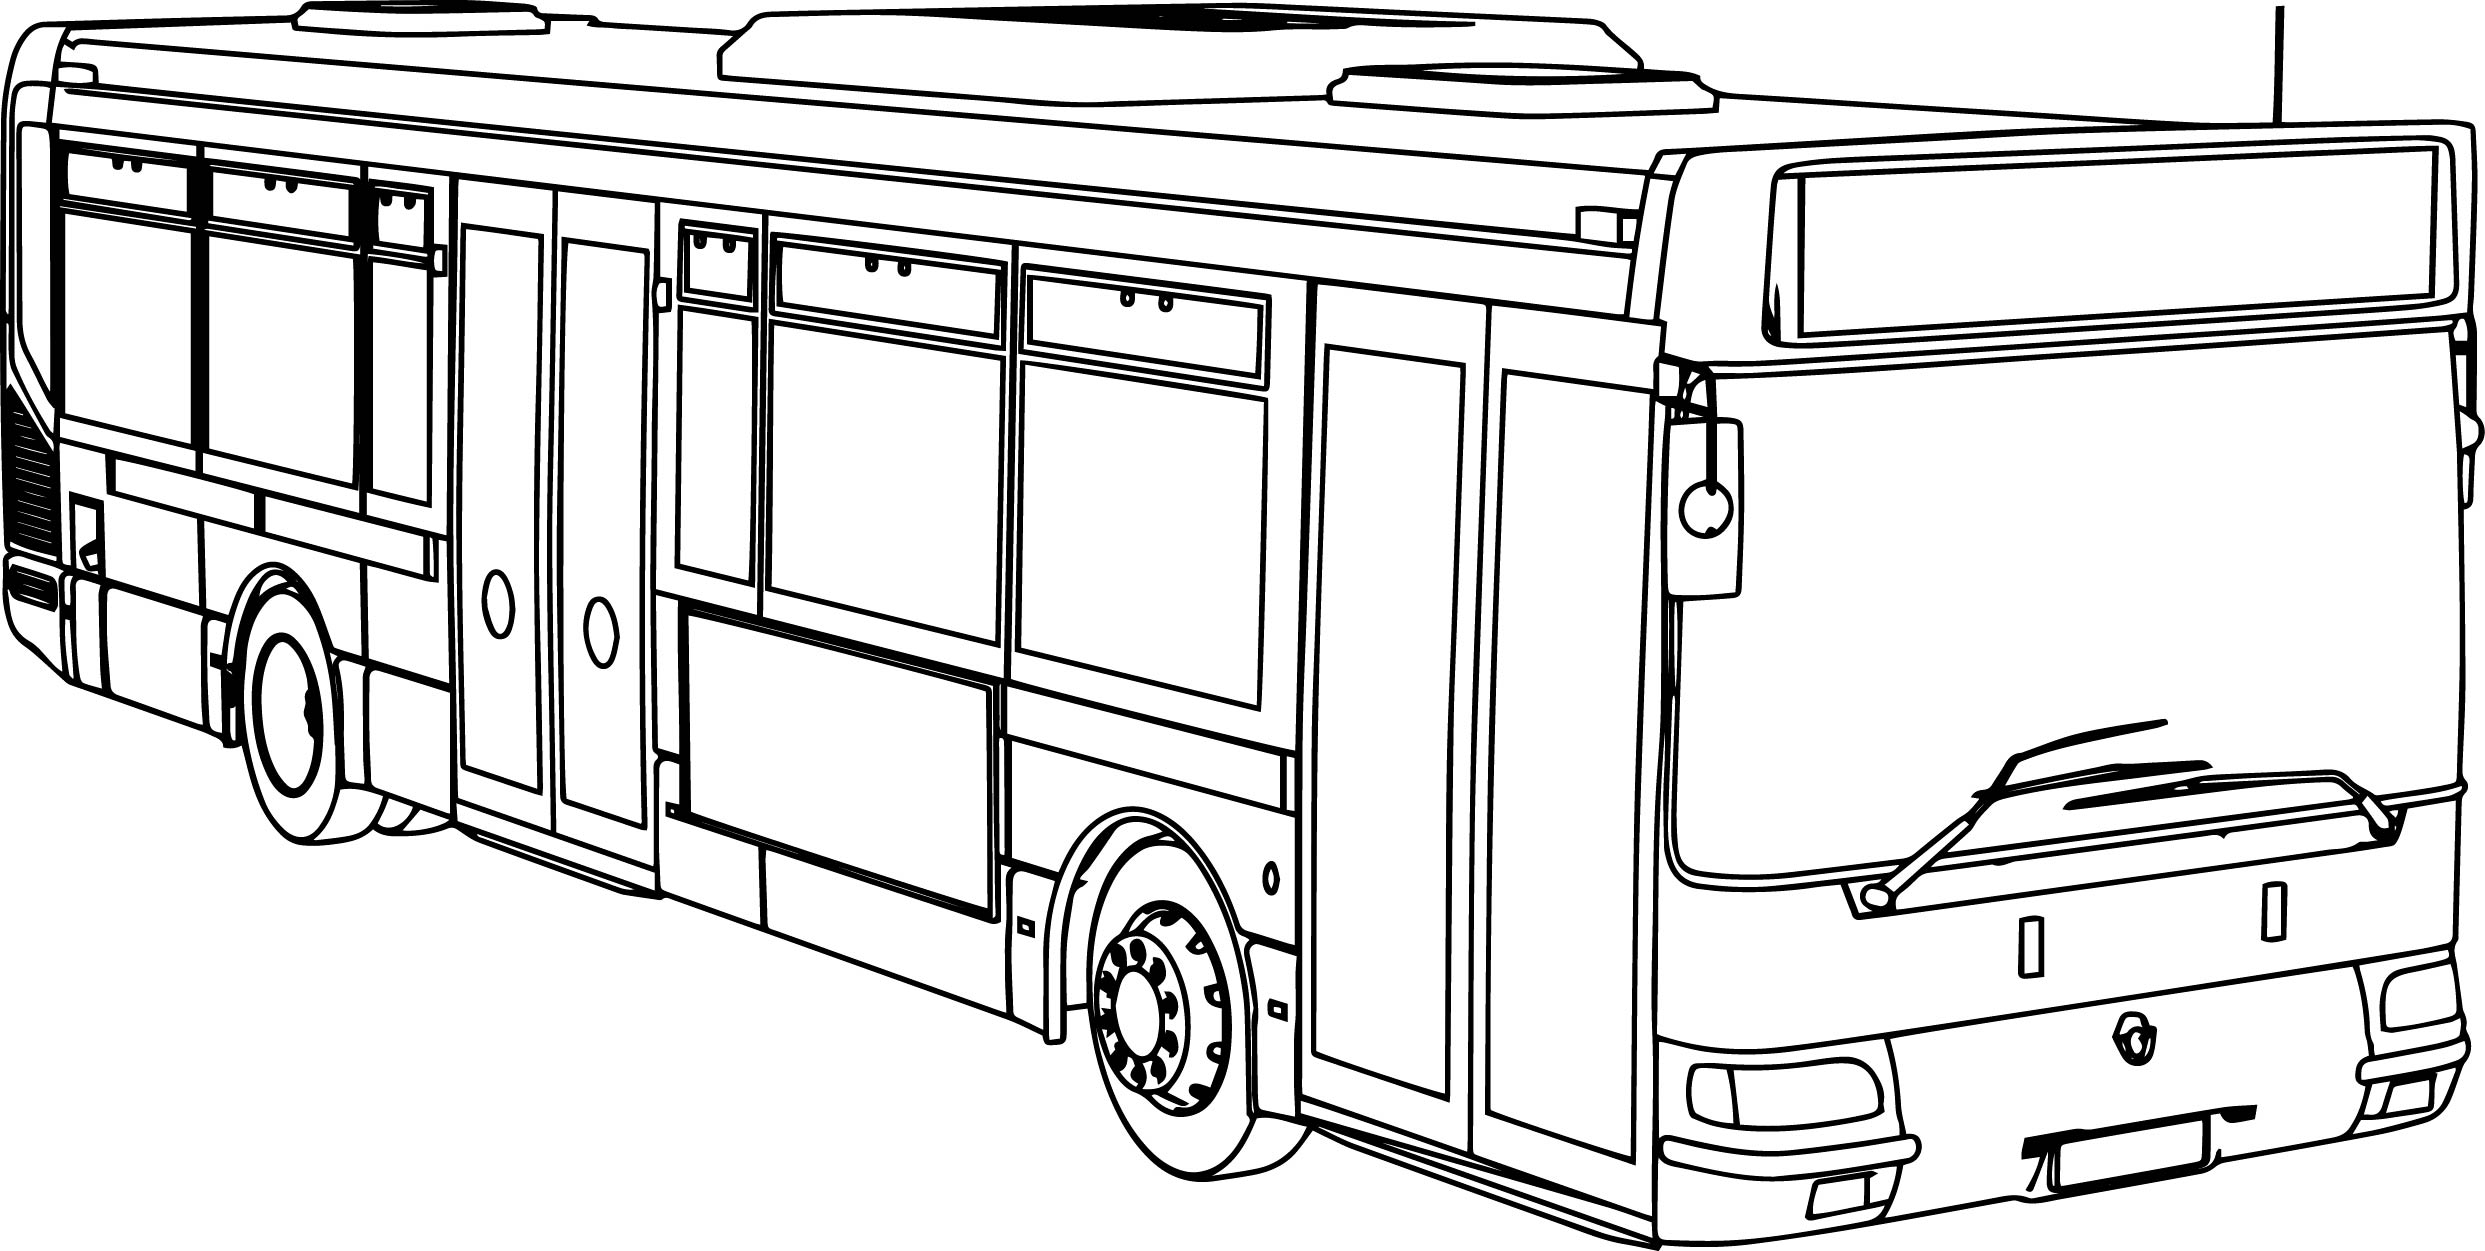 Renault Agora RATP Bus Coloring Page  Wecoloringpage